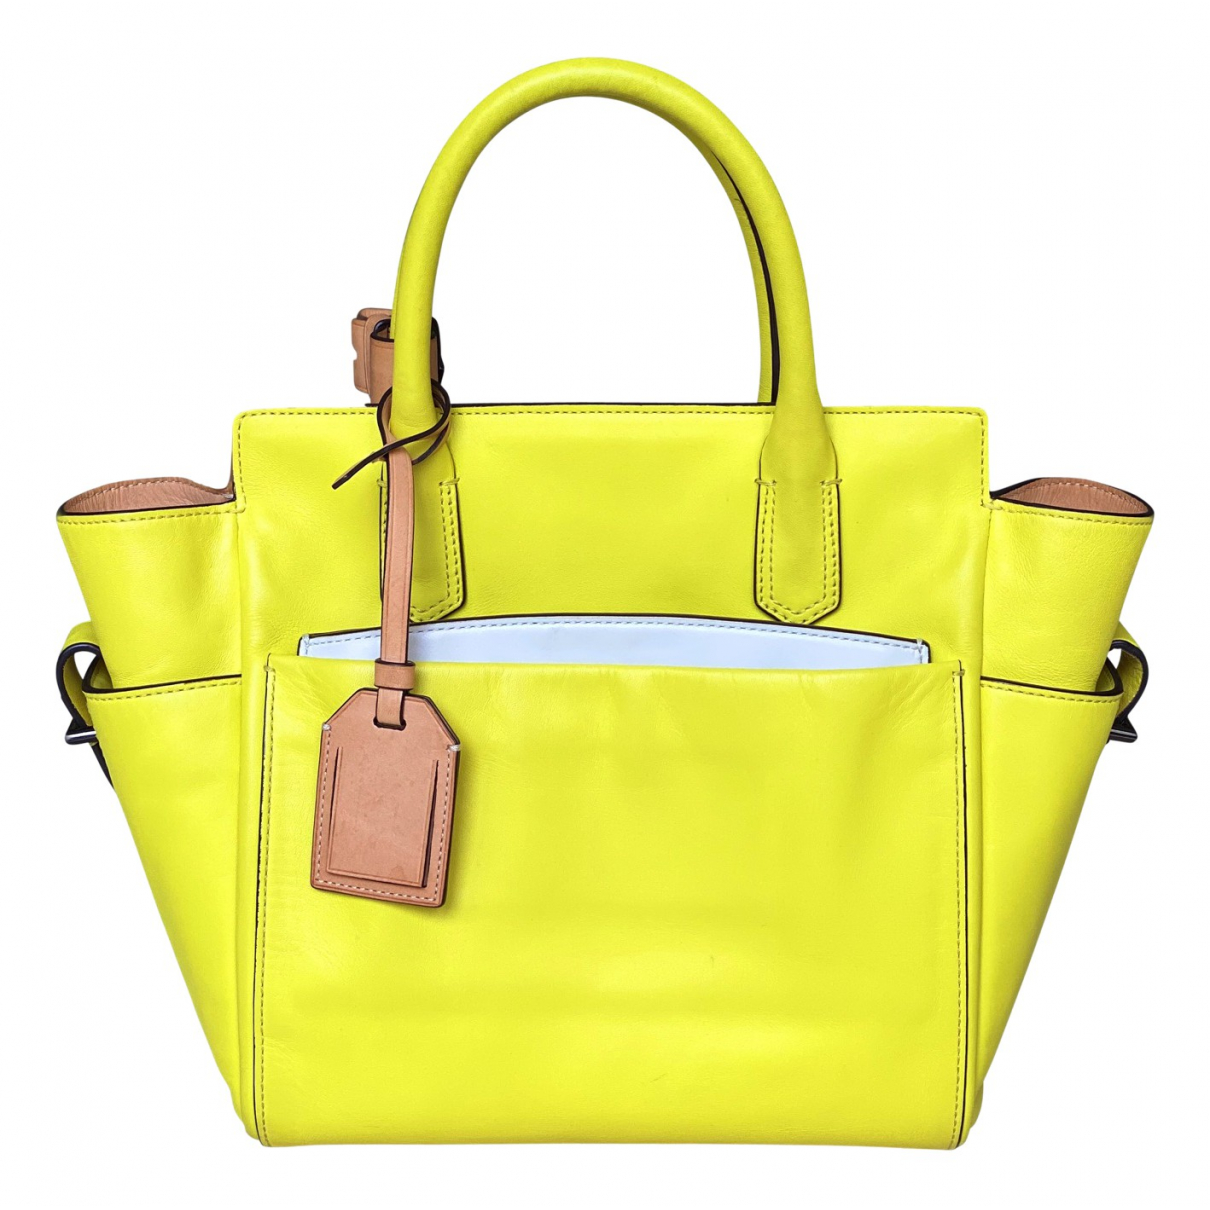 Reed Krakoff \N Yellow Leather handbag for Women \N